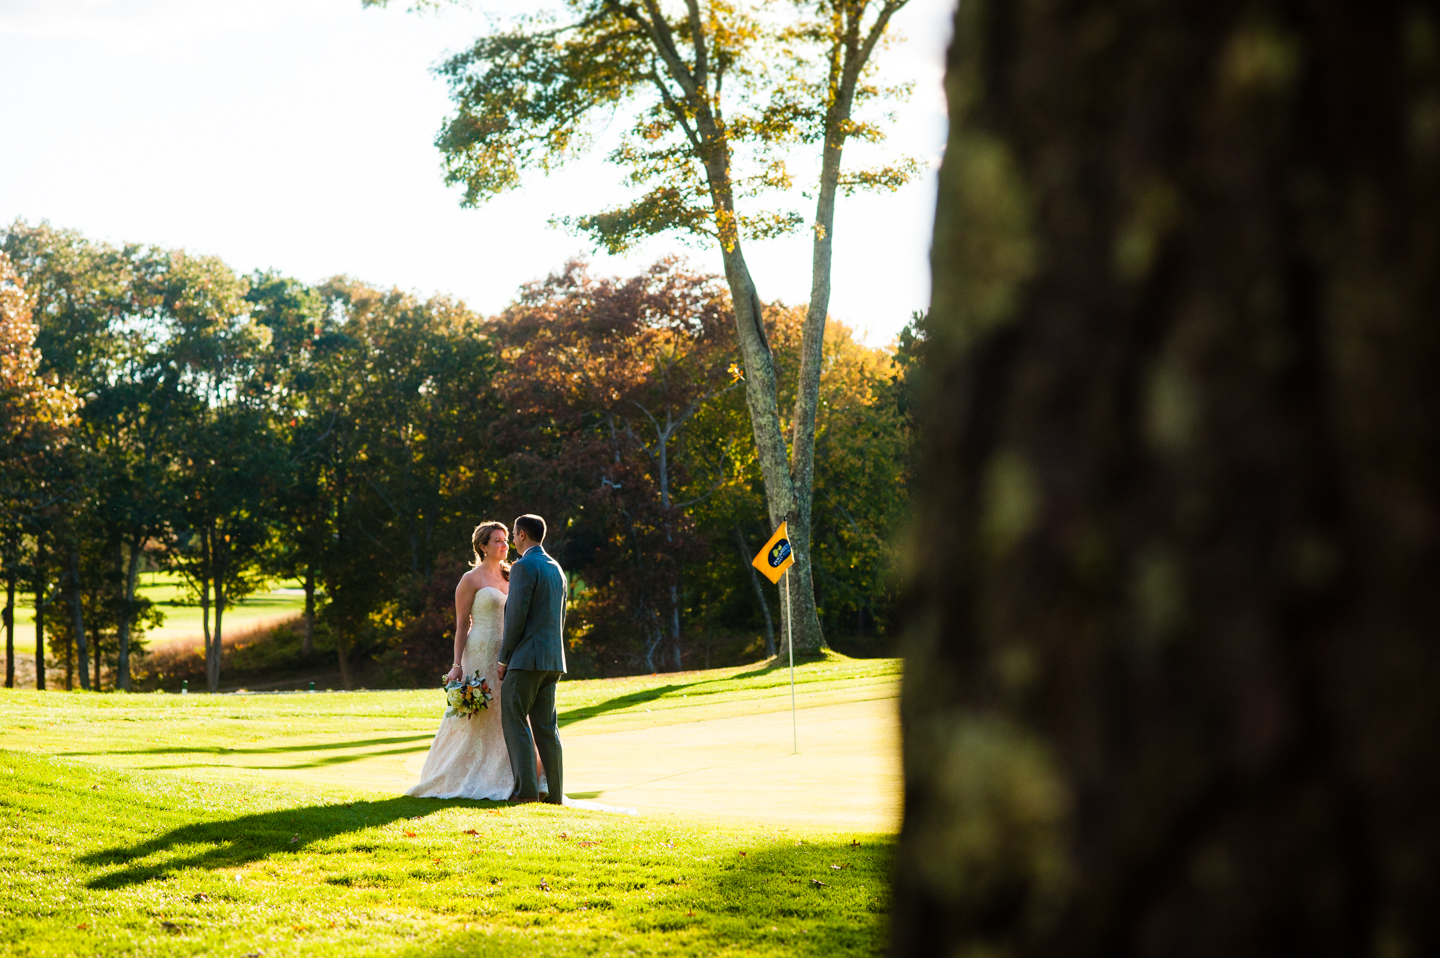 sunset light on golf course with bride and groom kissing